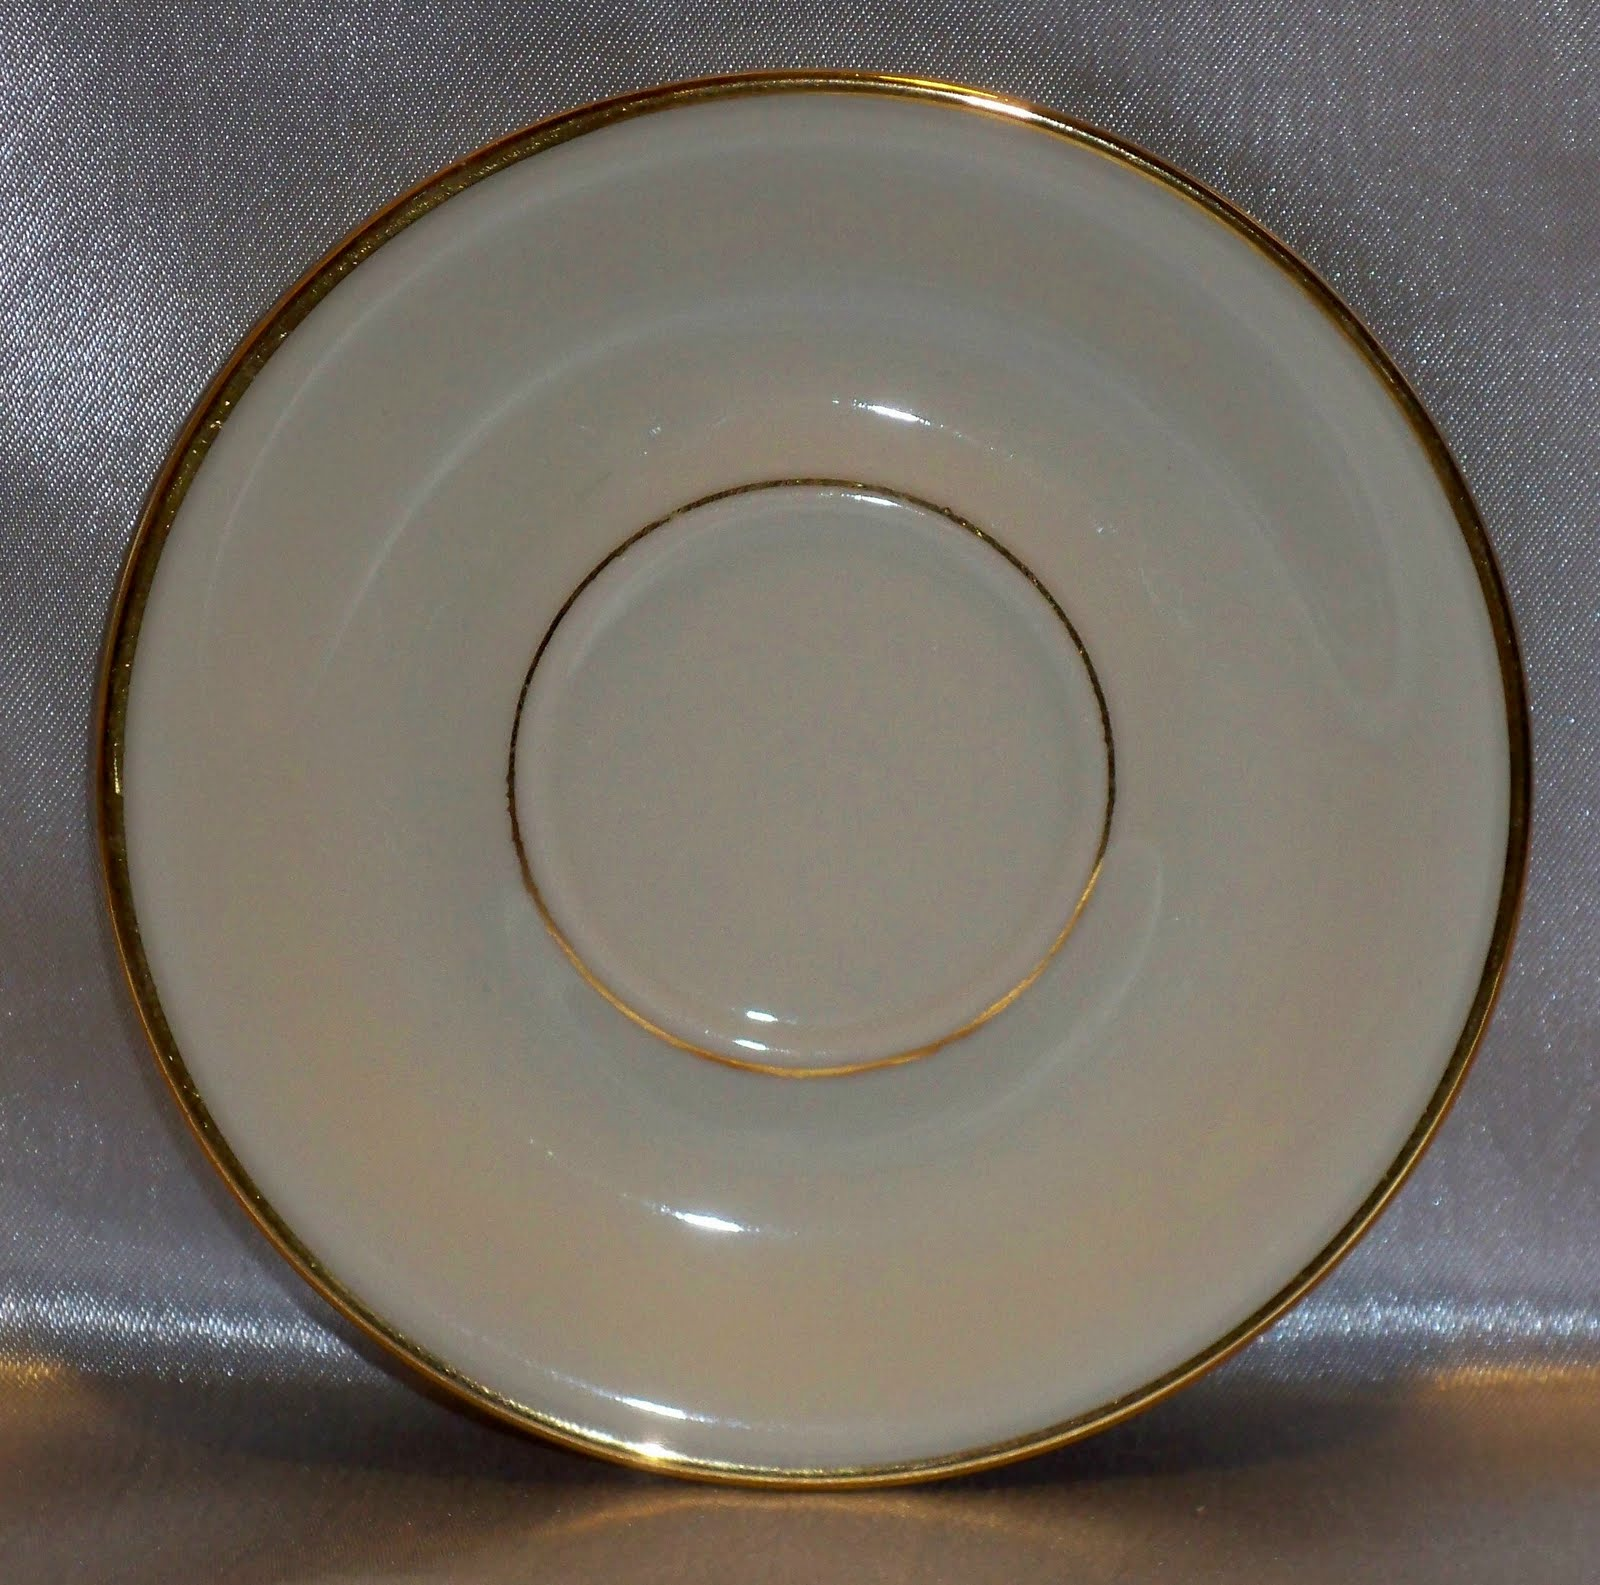 demitasse cups saucers saucer plate shapes styles designs